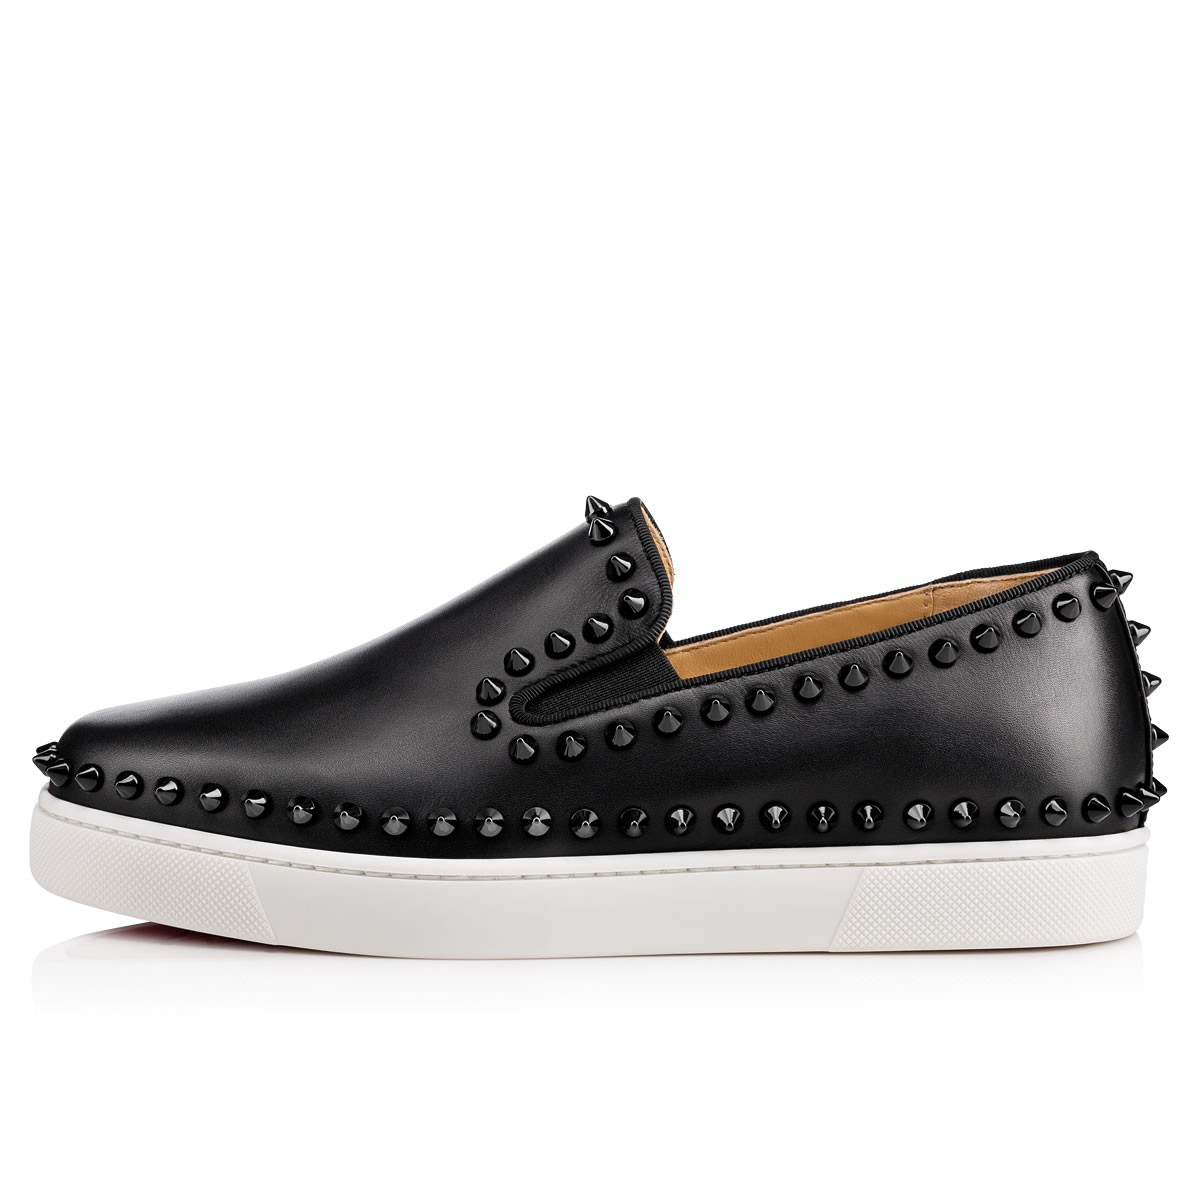 f244b692d8d2 Pik Boat Women s Flat Black Leather - Women Shoes - Christian Louboutin